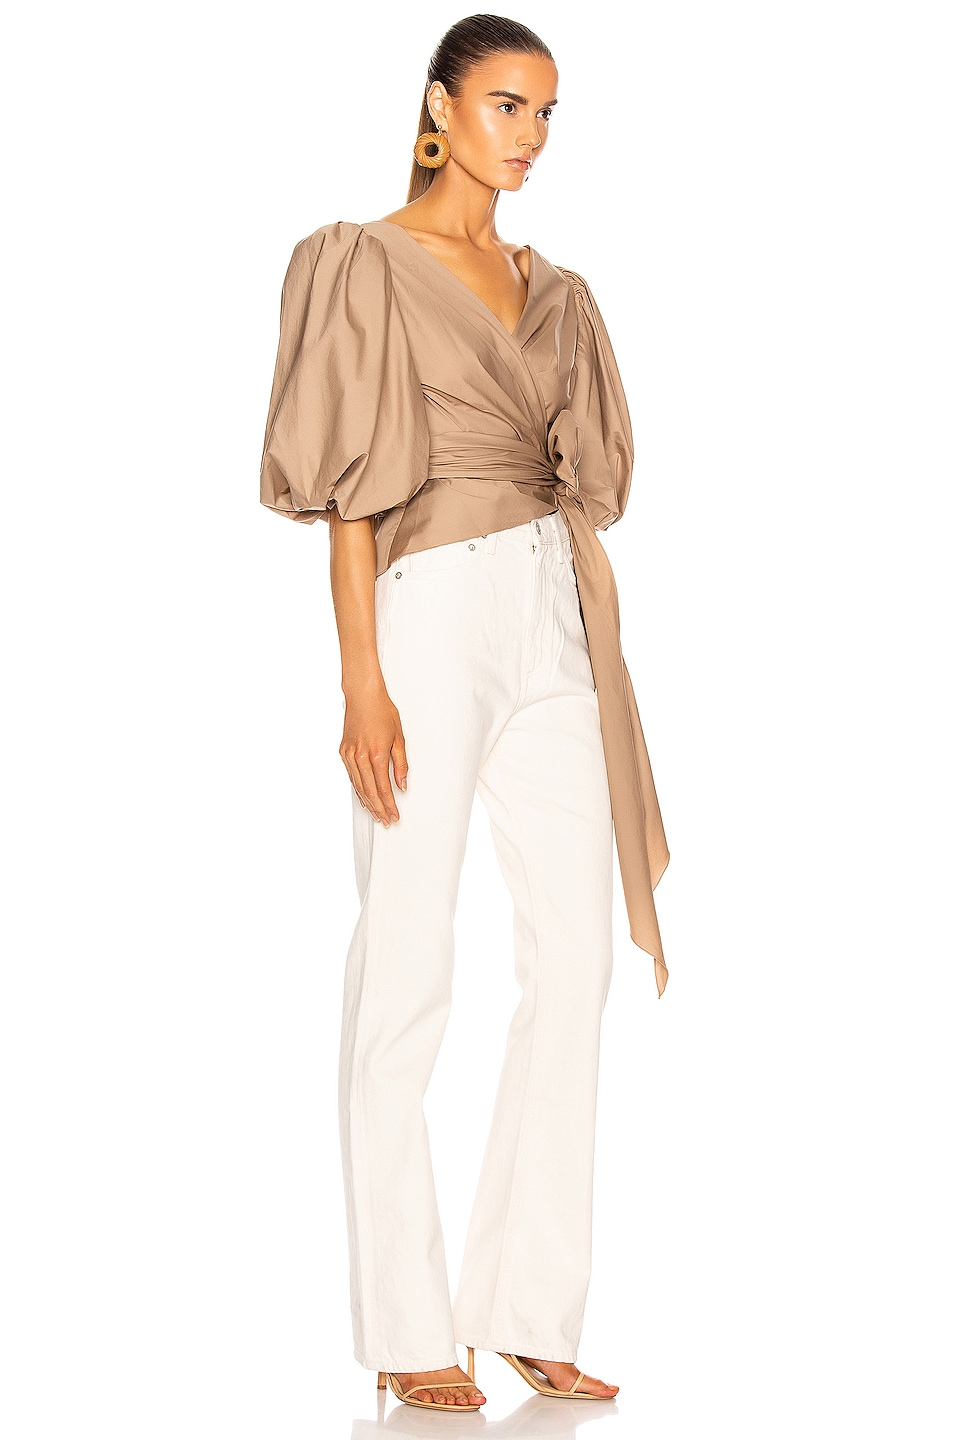 Image 2 of Johanna Ortiz Taupe Sabor Pacifico Top in Taupe